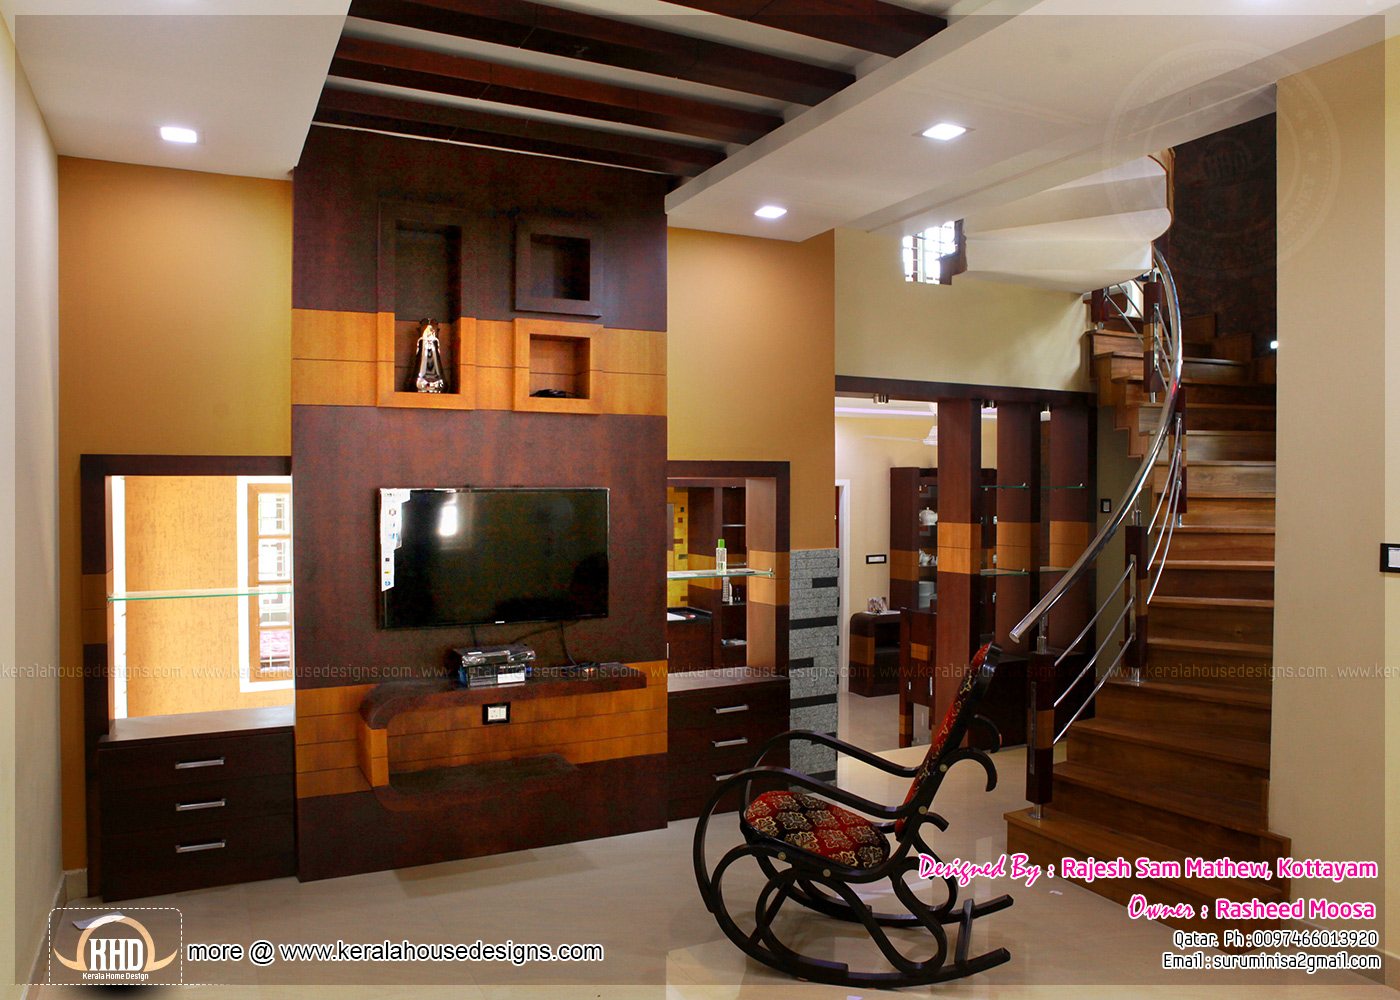 Kerala interior design with photos kerala home design for Latest home interior designs images